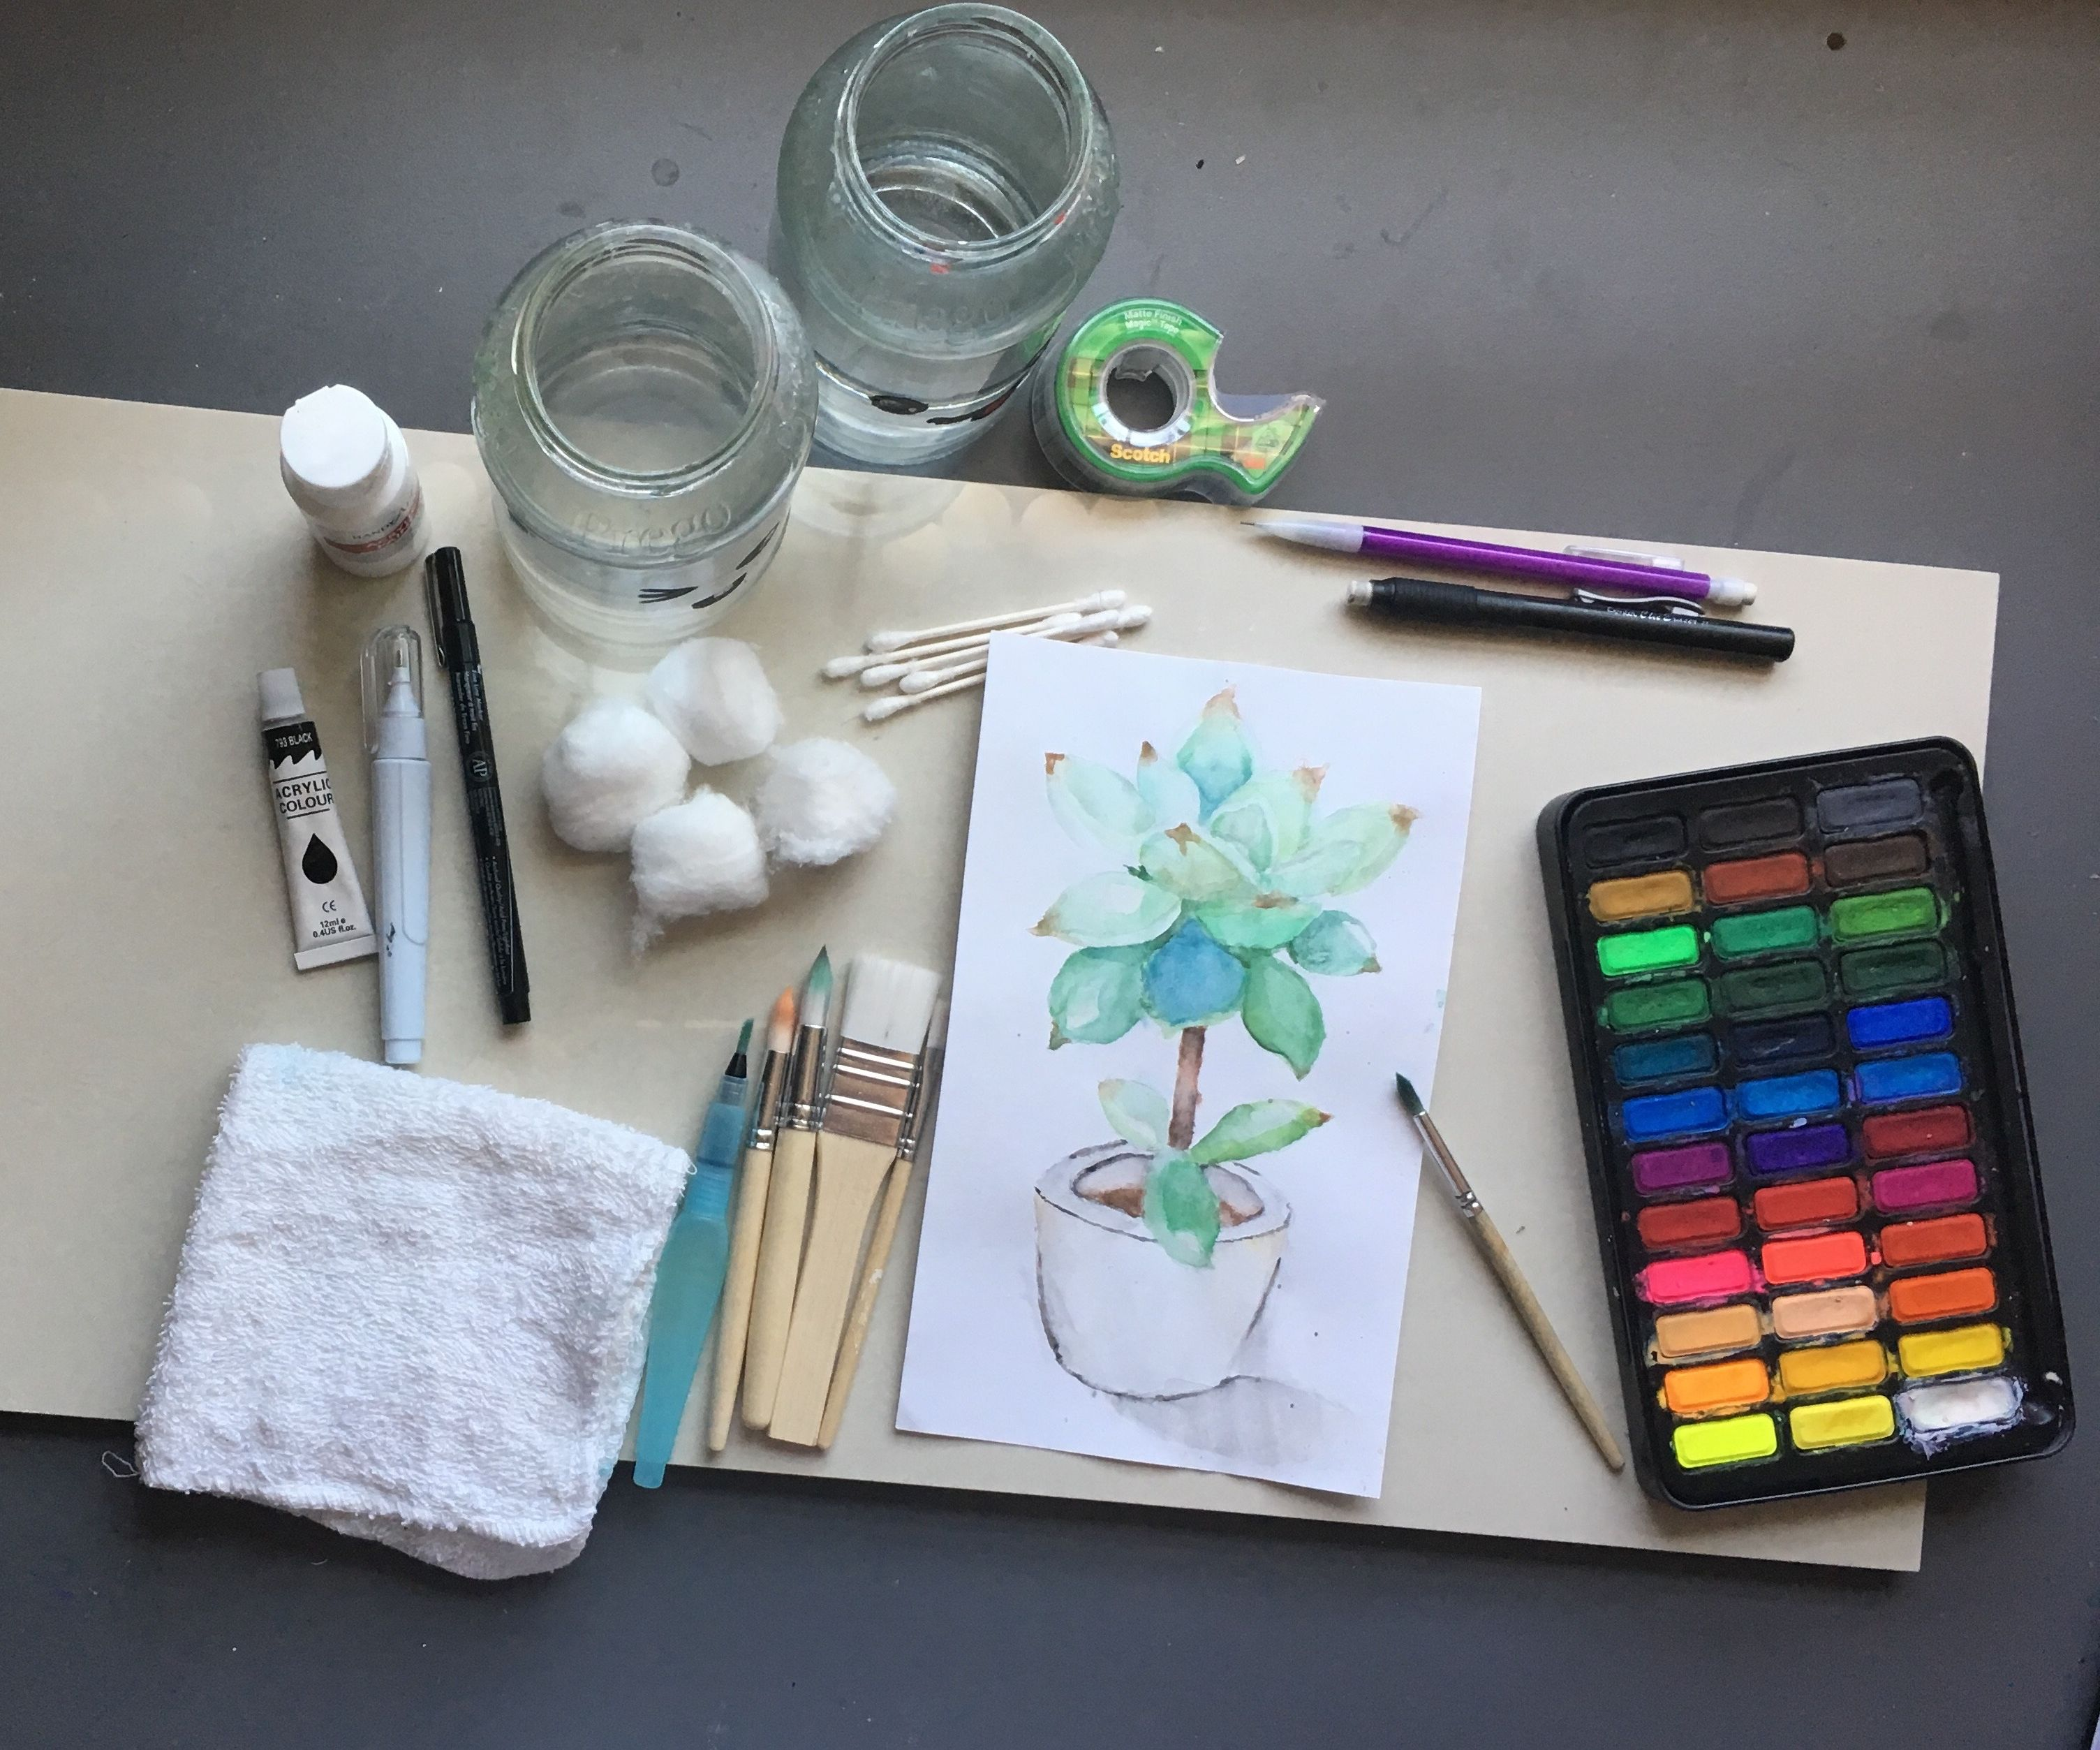 Poorman's Watercolors; Painting on a Budget